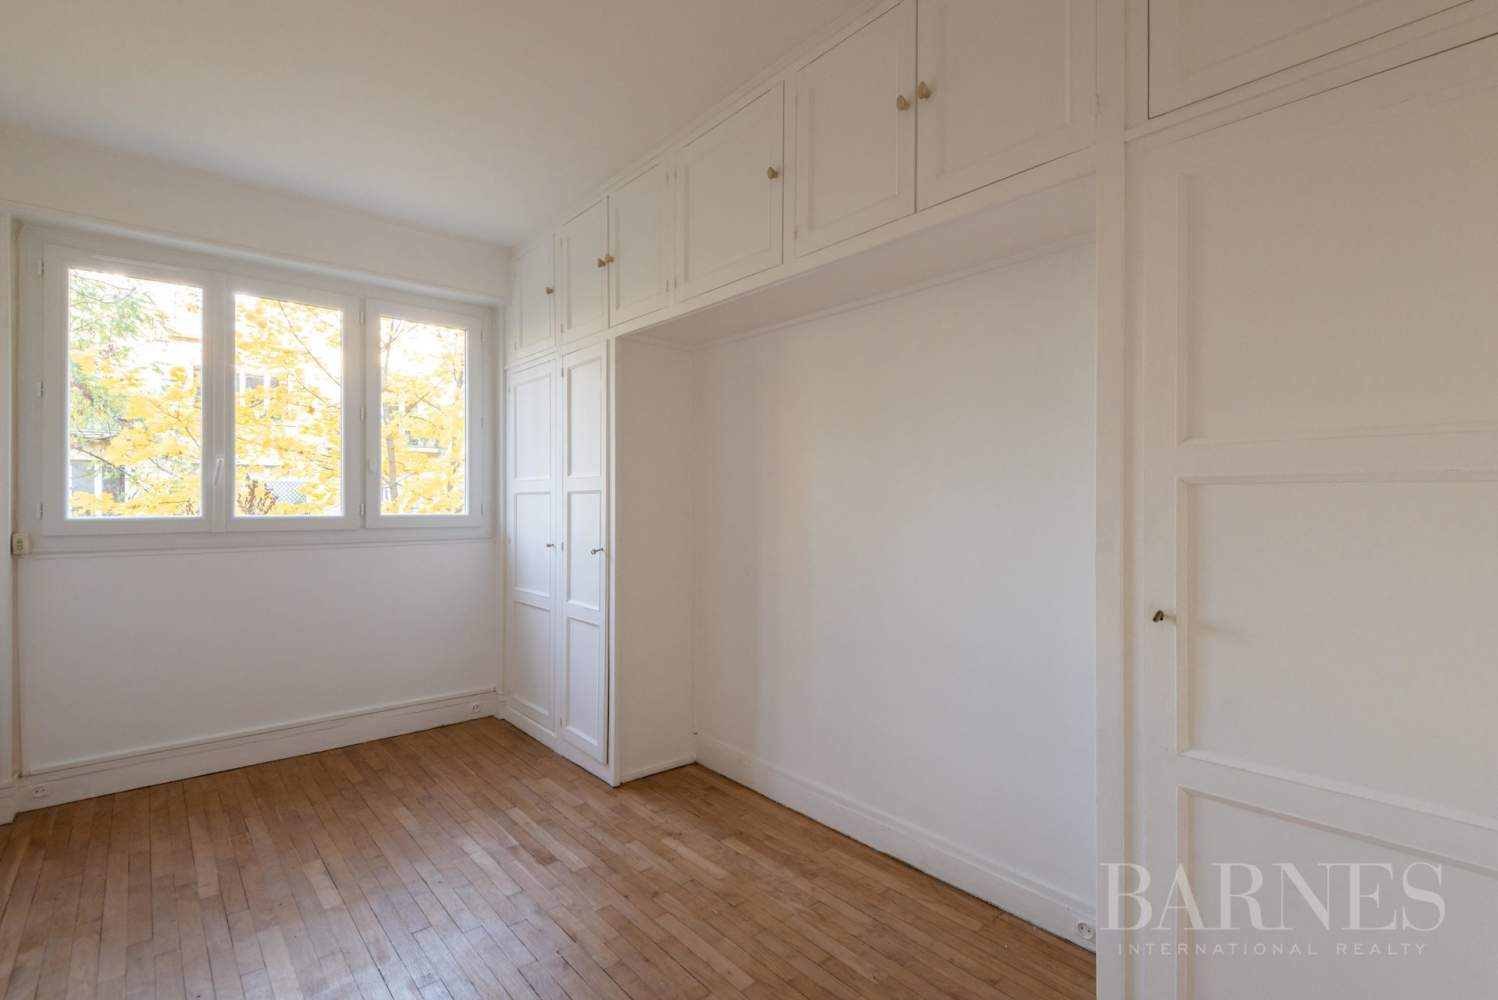 NEUILLY CHEZY APPARTEMENT 3 CHAMBRES VIDE PARKING BALCON picture 5